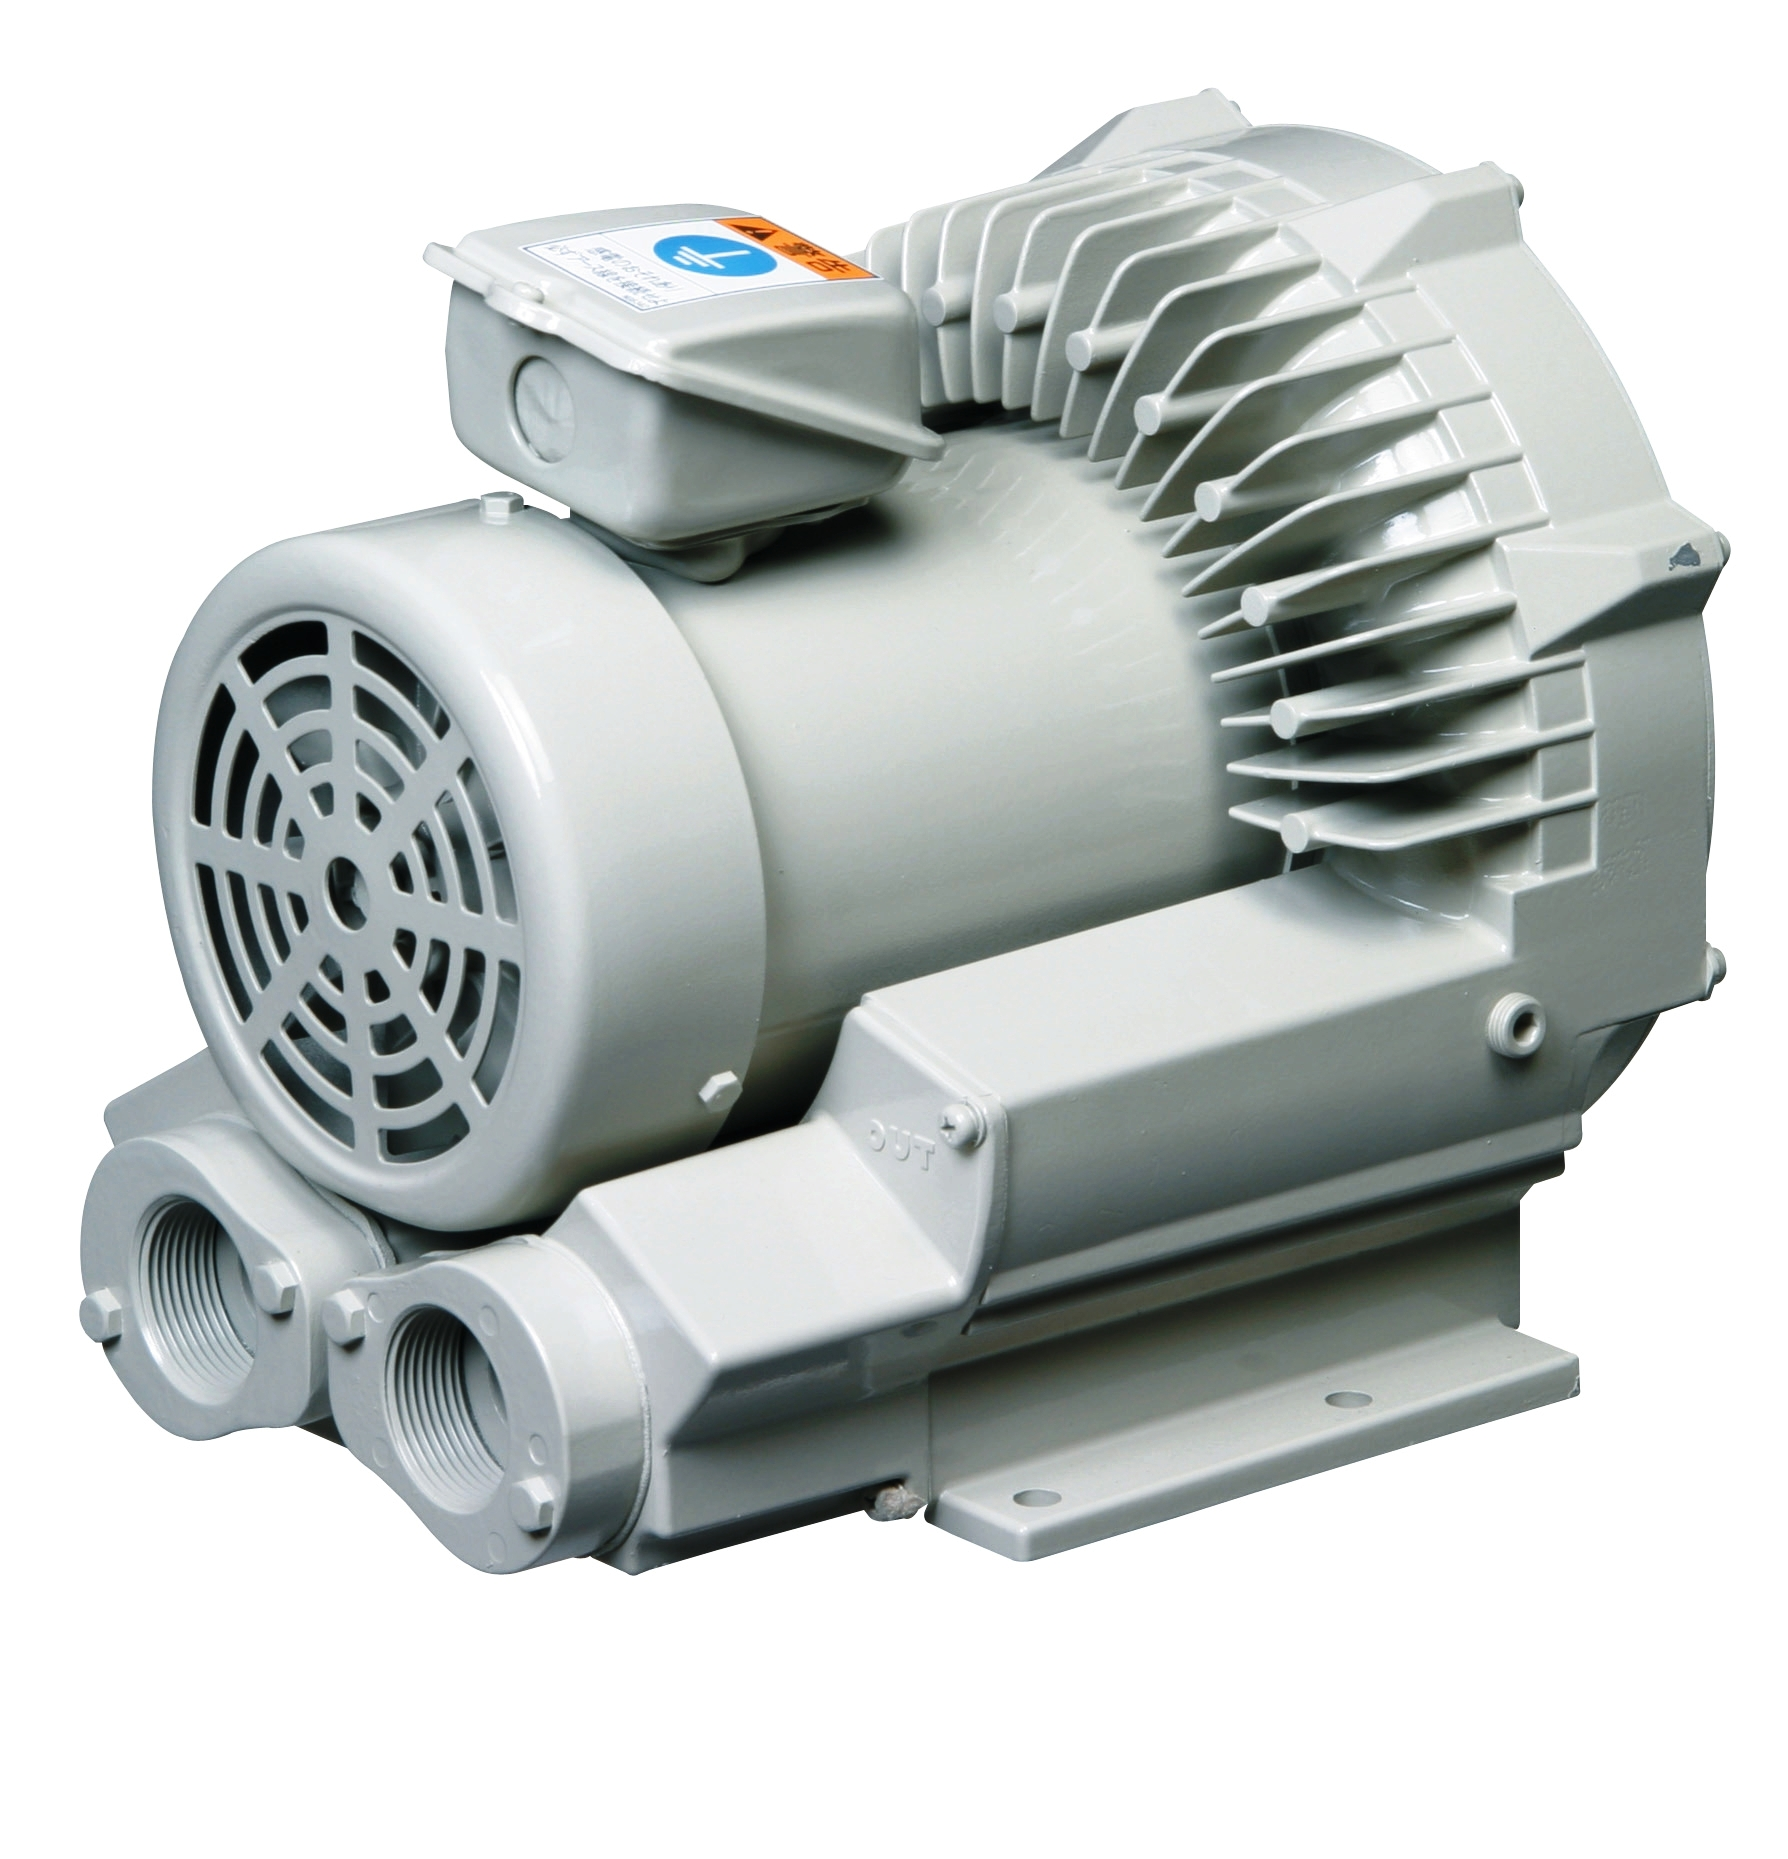 Supercharger Blower Pictures: Vortex Blowers - Industrial Oil Less Vortex Blowers